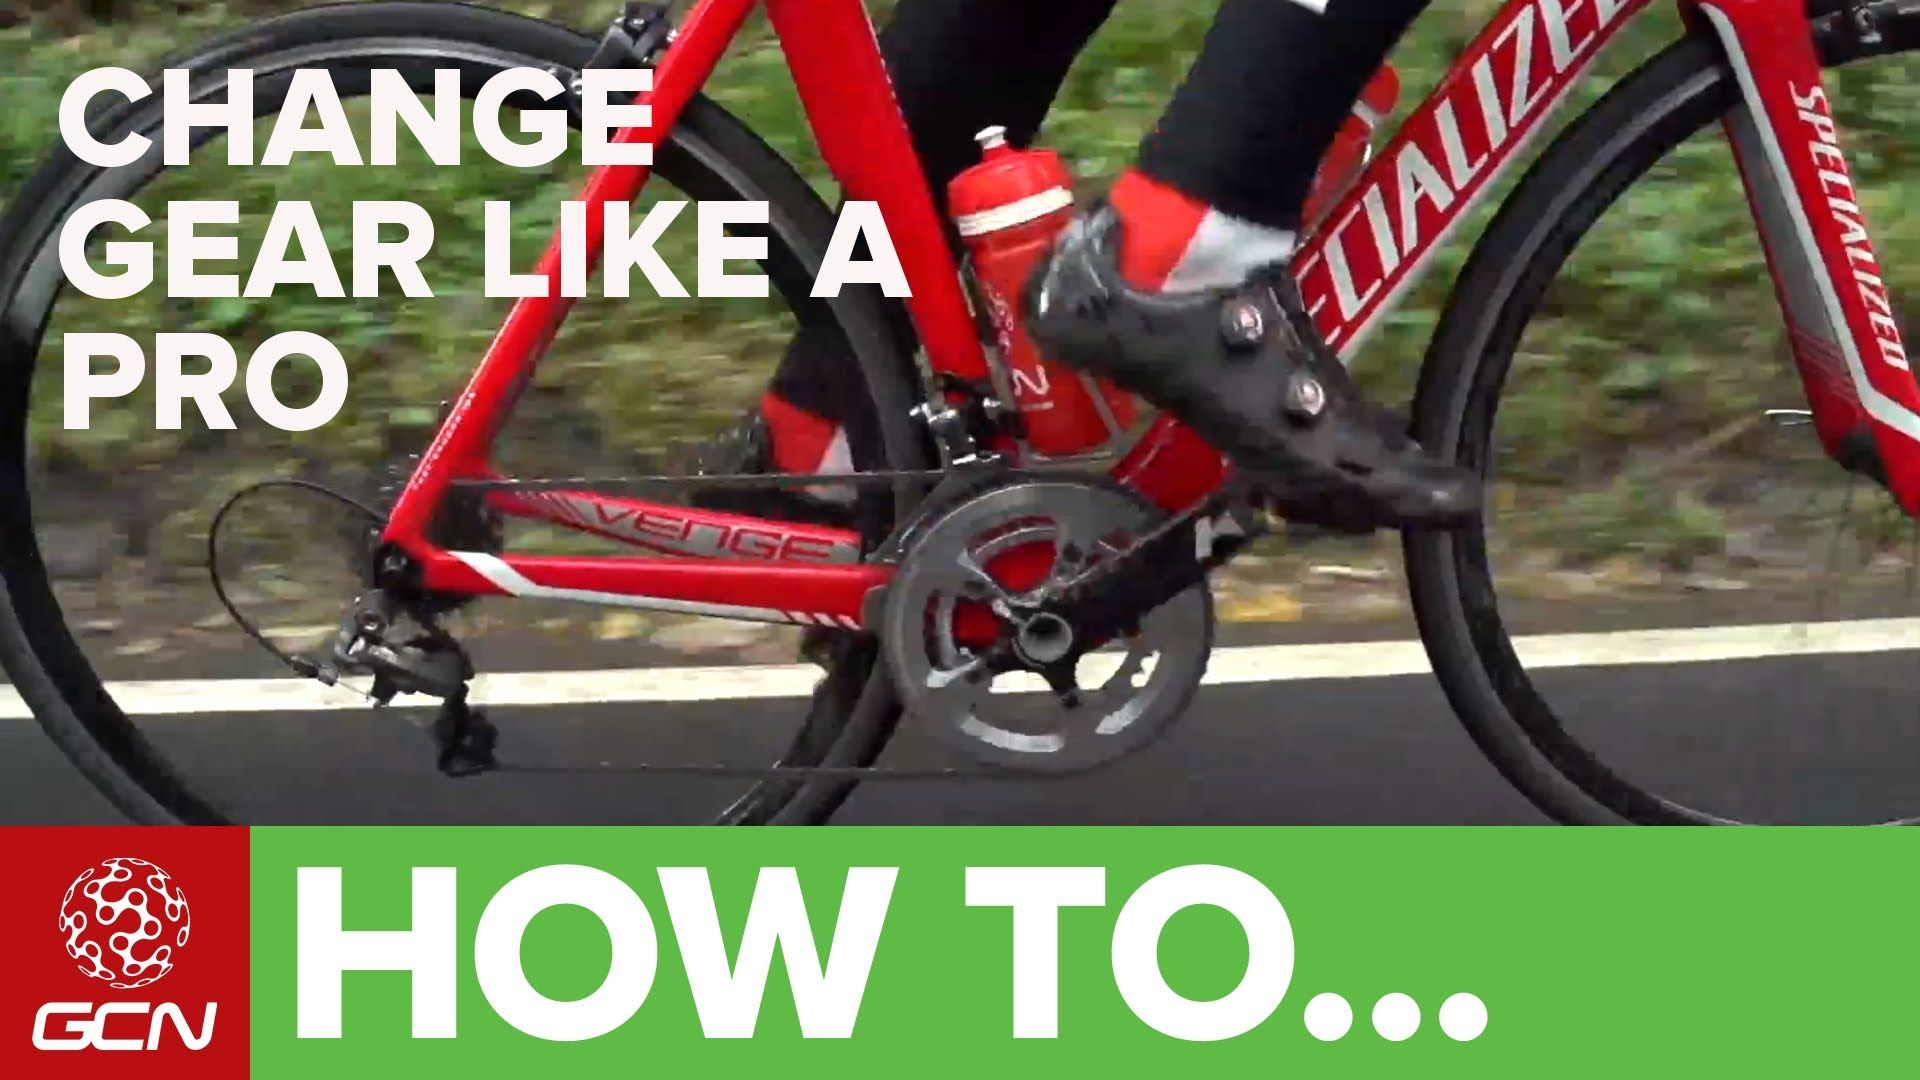 Carry More Momentum And Go Faster On Your Bike By Changing Gear